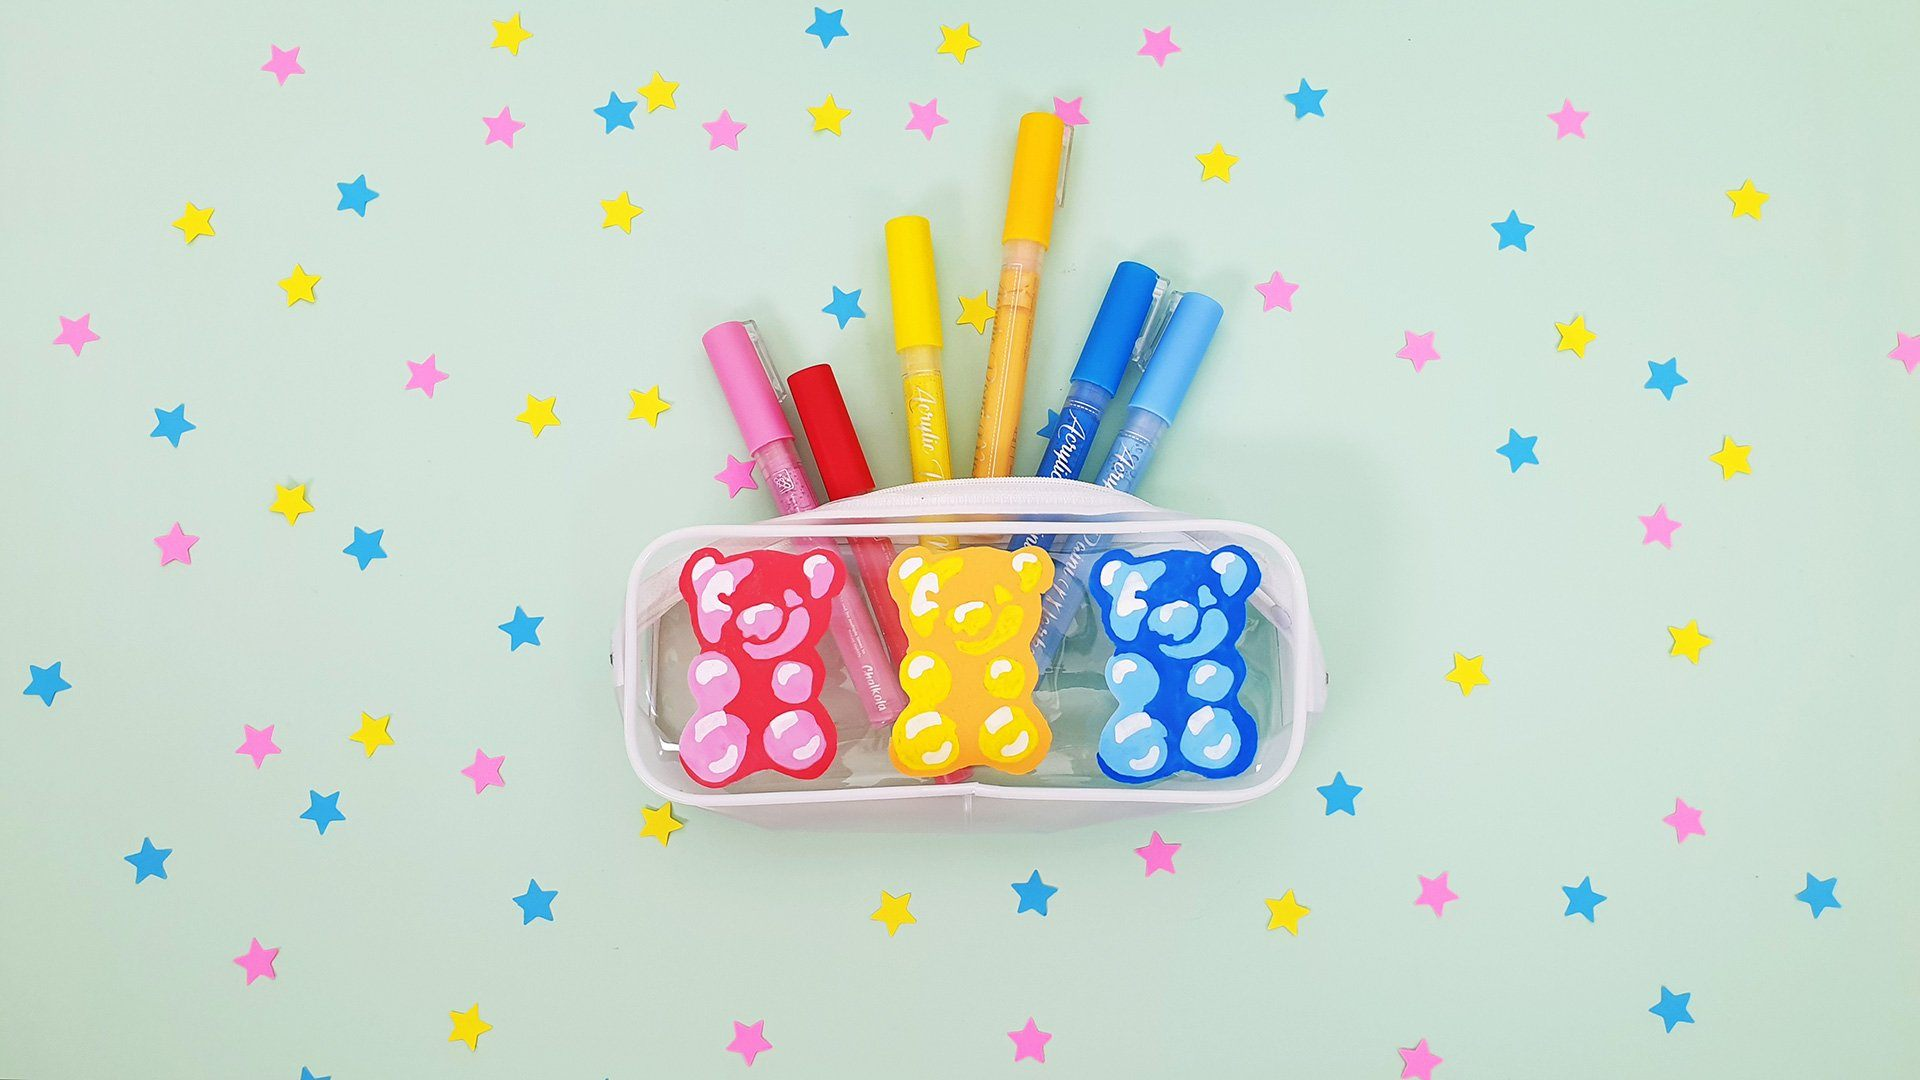 HOW TO: Personalize Your Pencil Case Using Acrylic Paint Pens